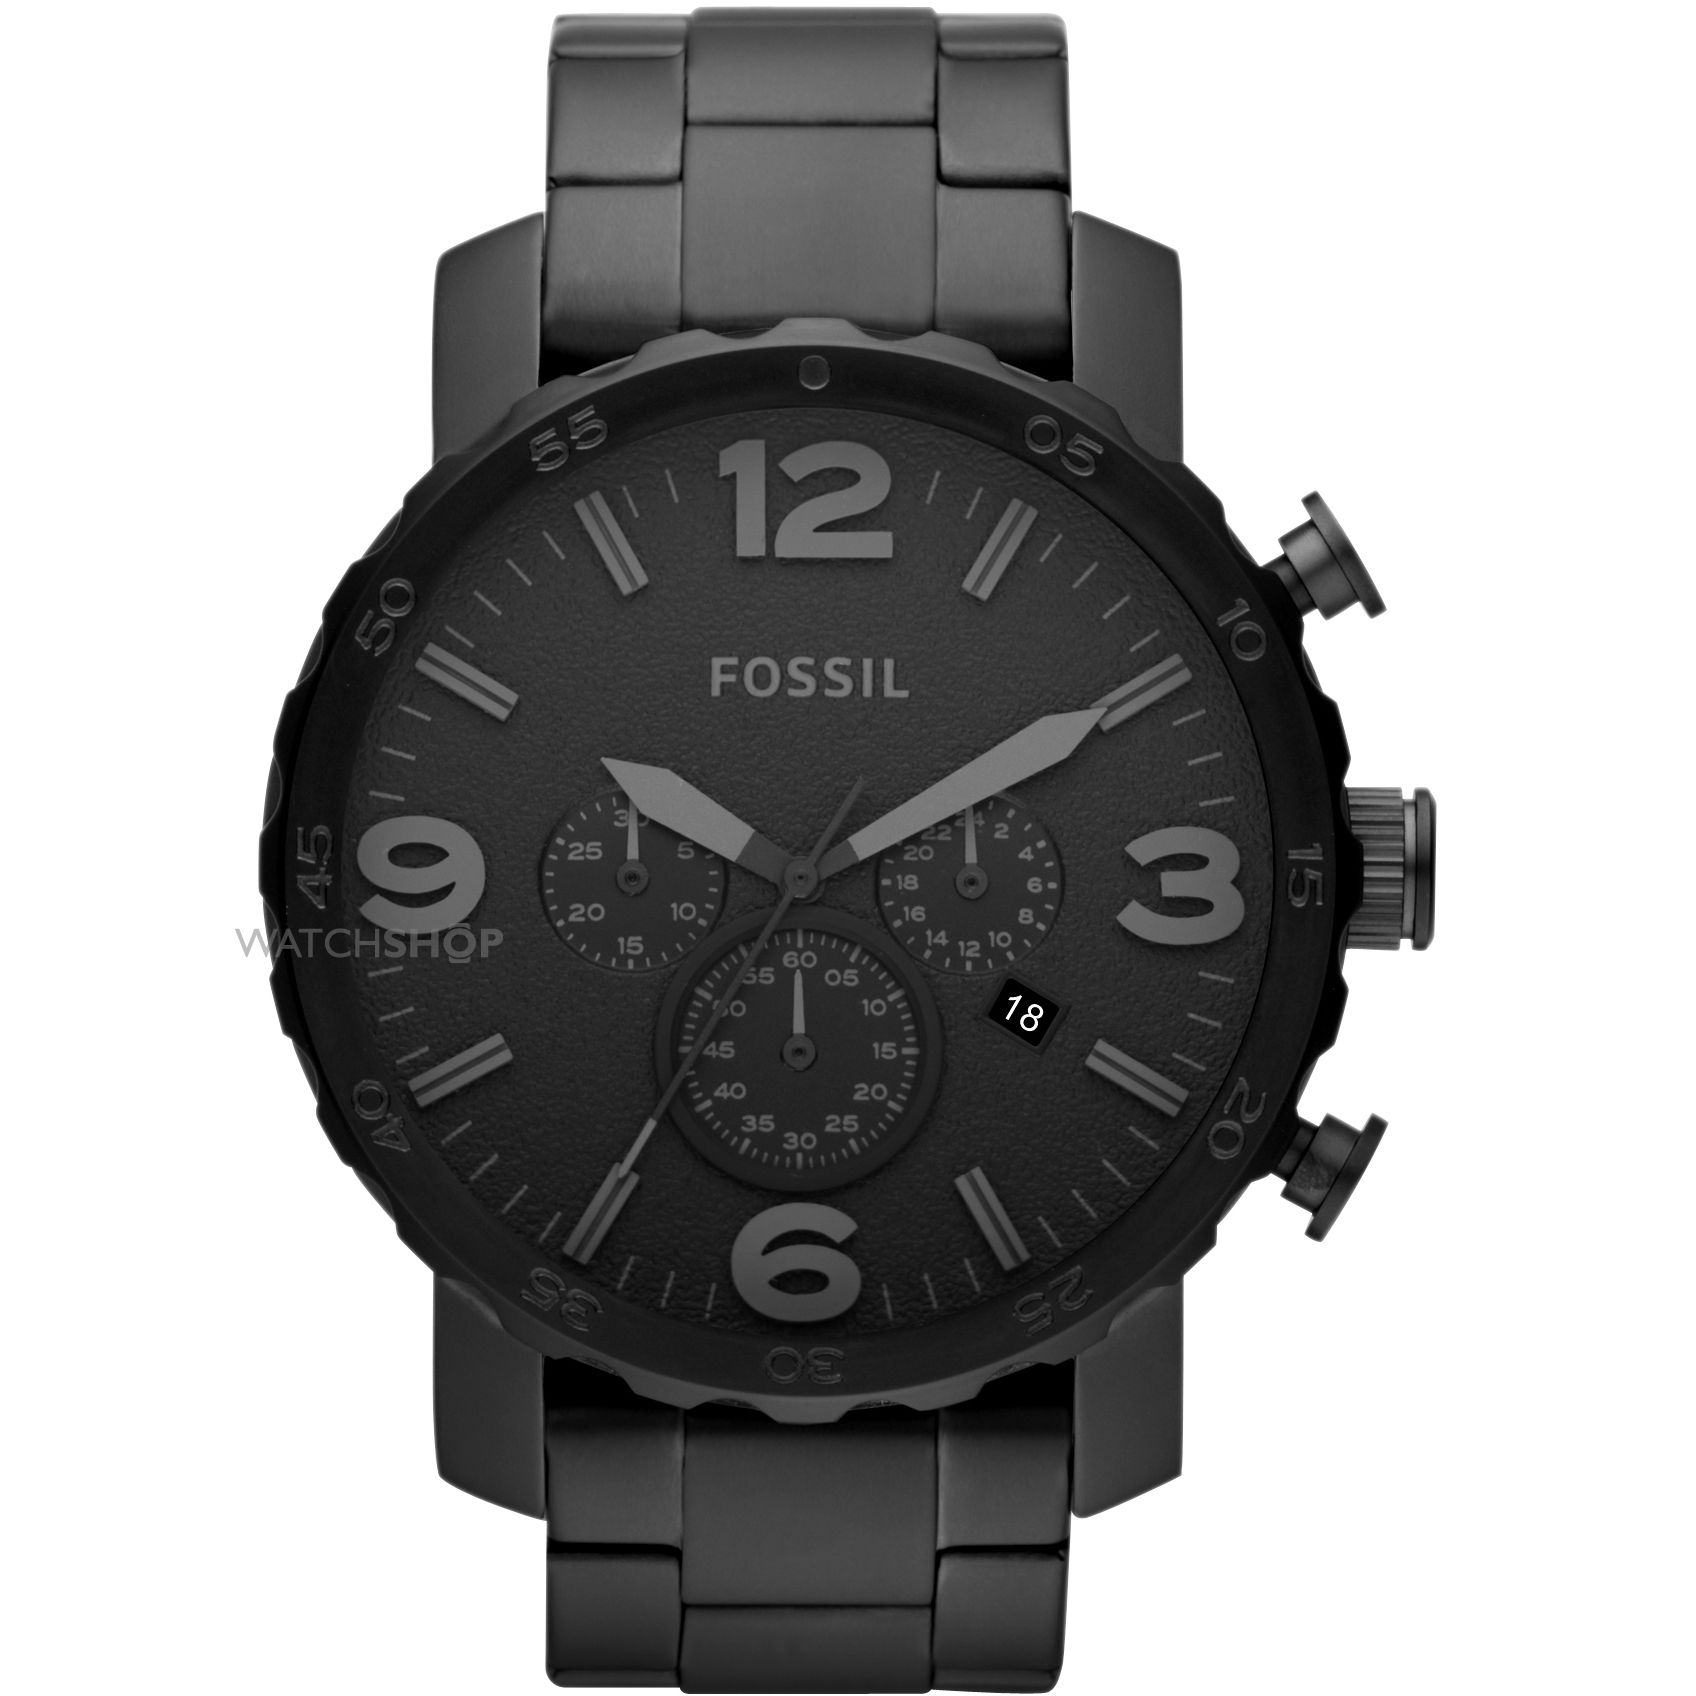 Fossil Men's Watch JR1401